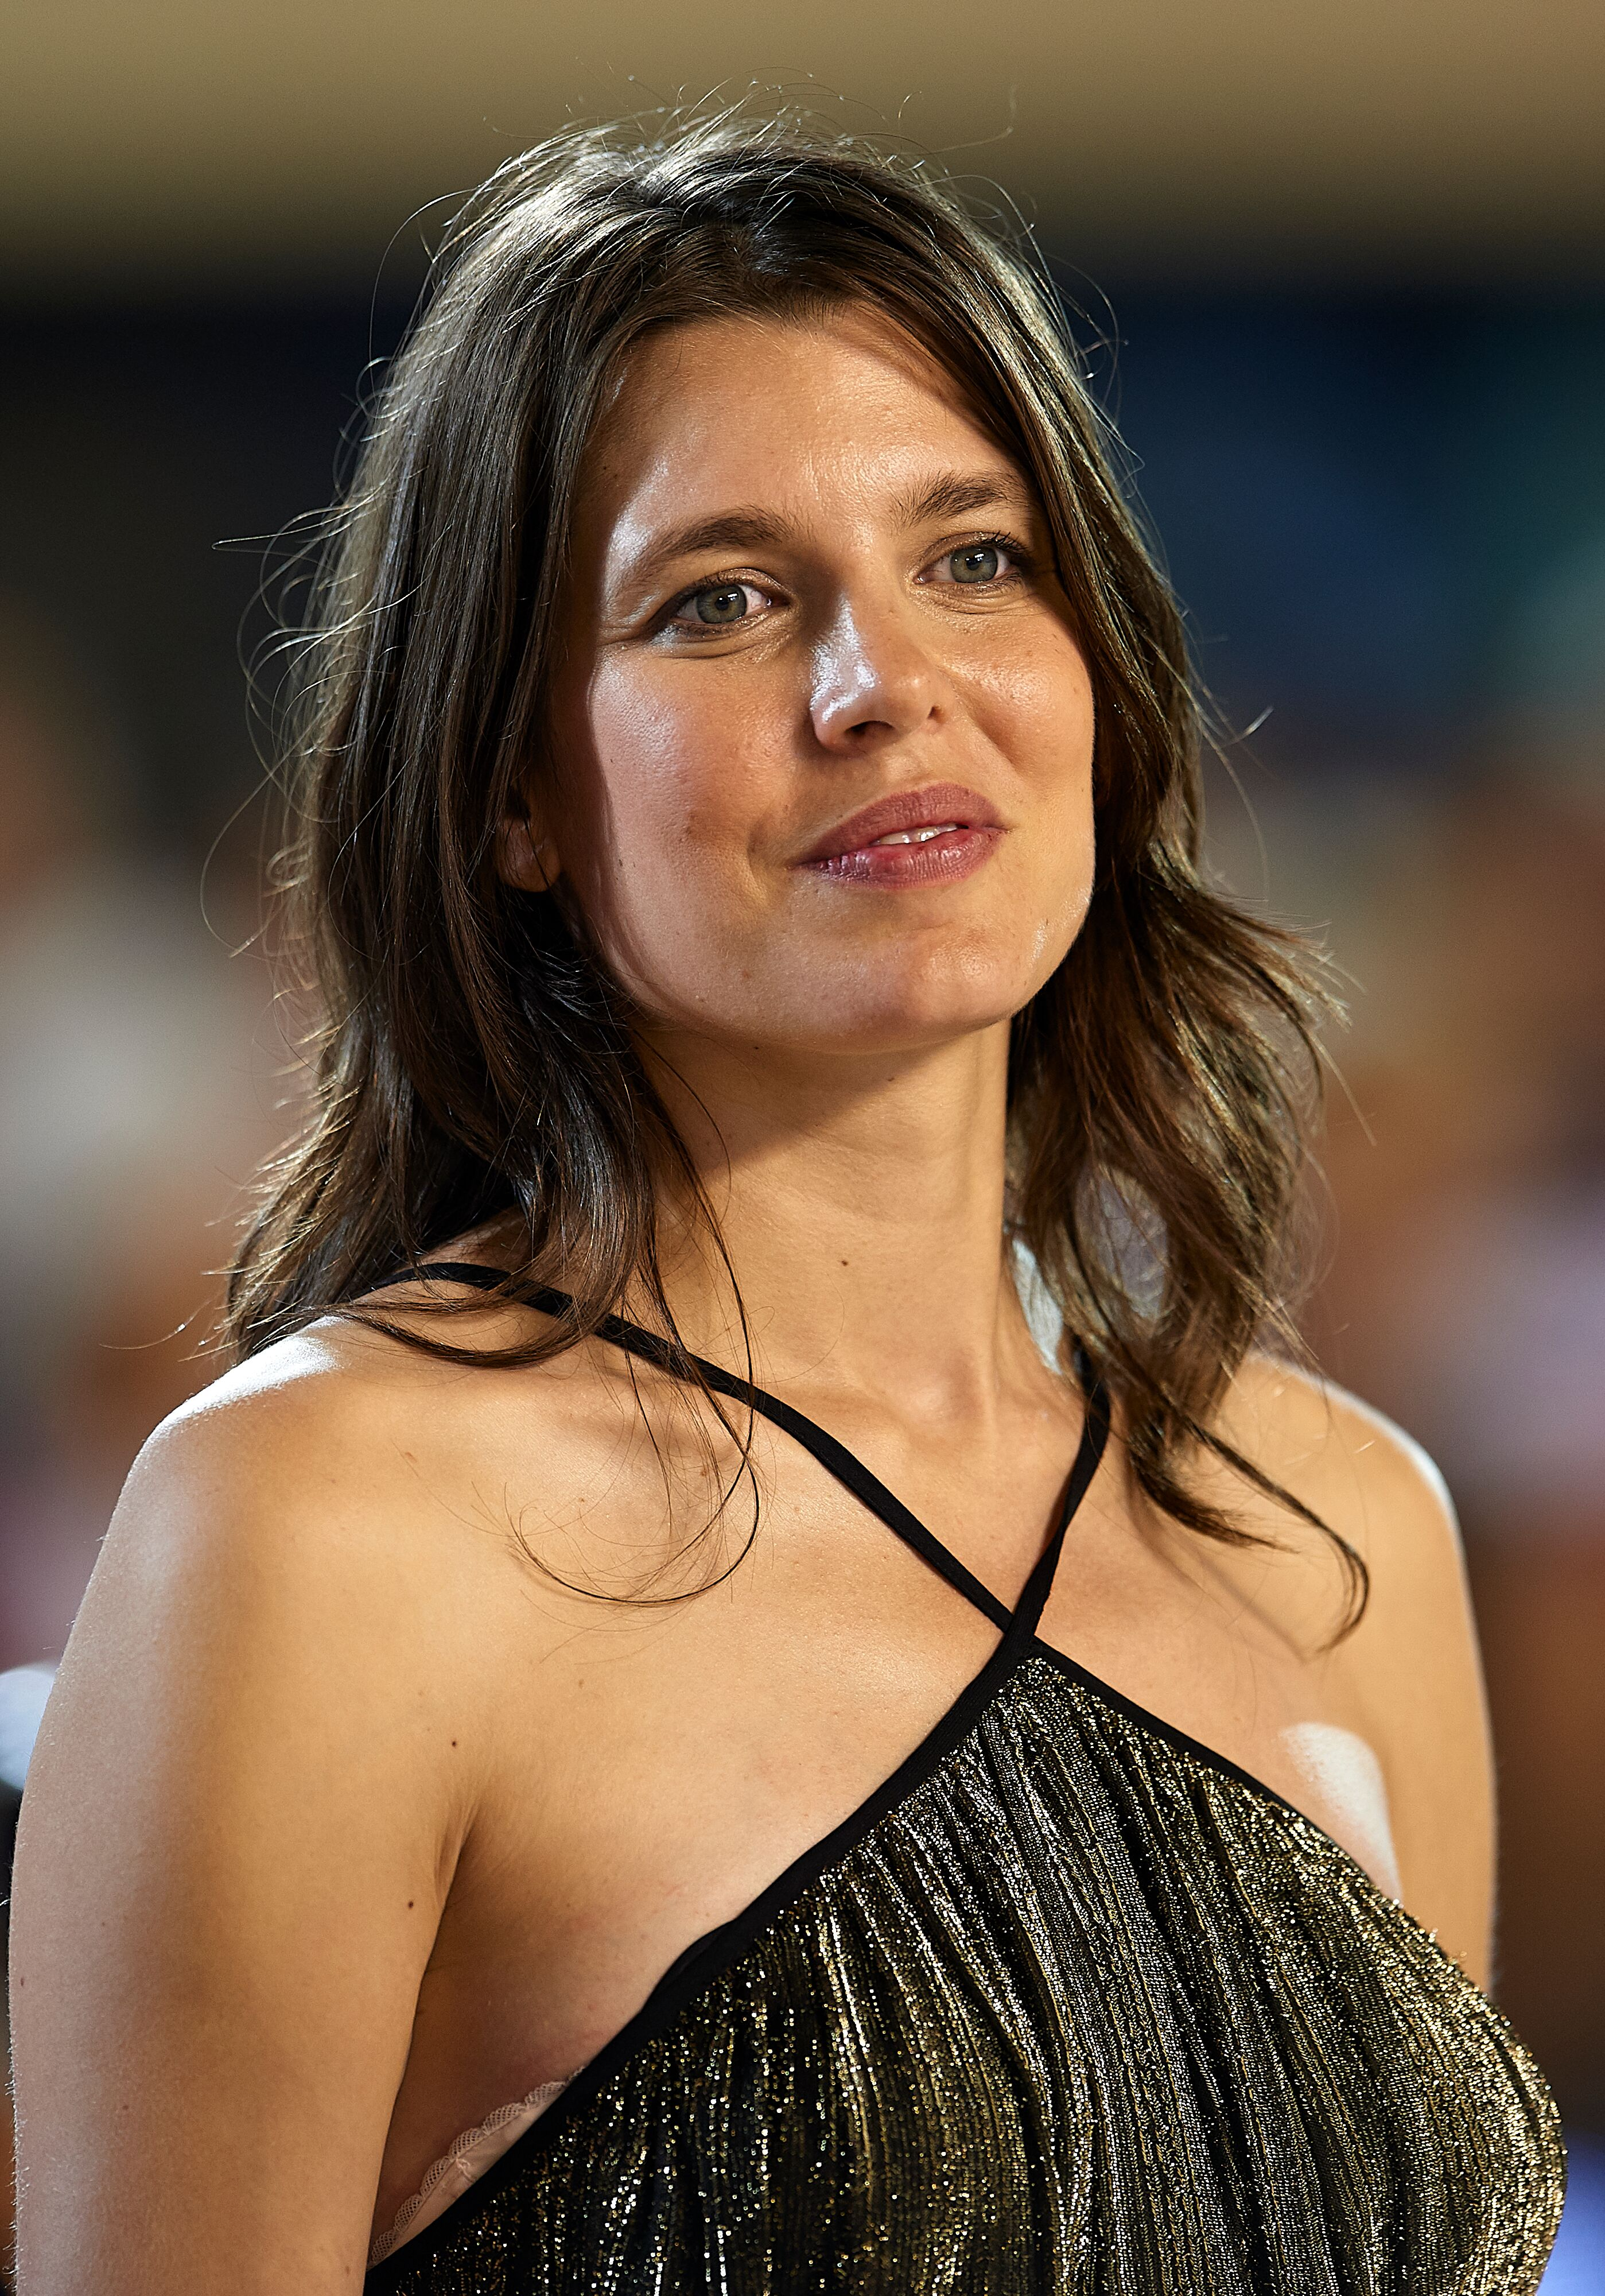 Charlotte Casiraghi attends the Global Champions Tour of Monaco.   Source: Getty Images